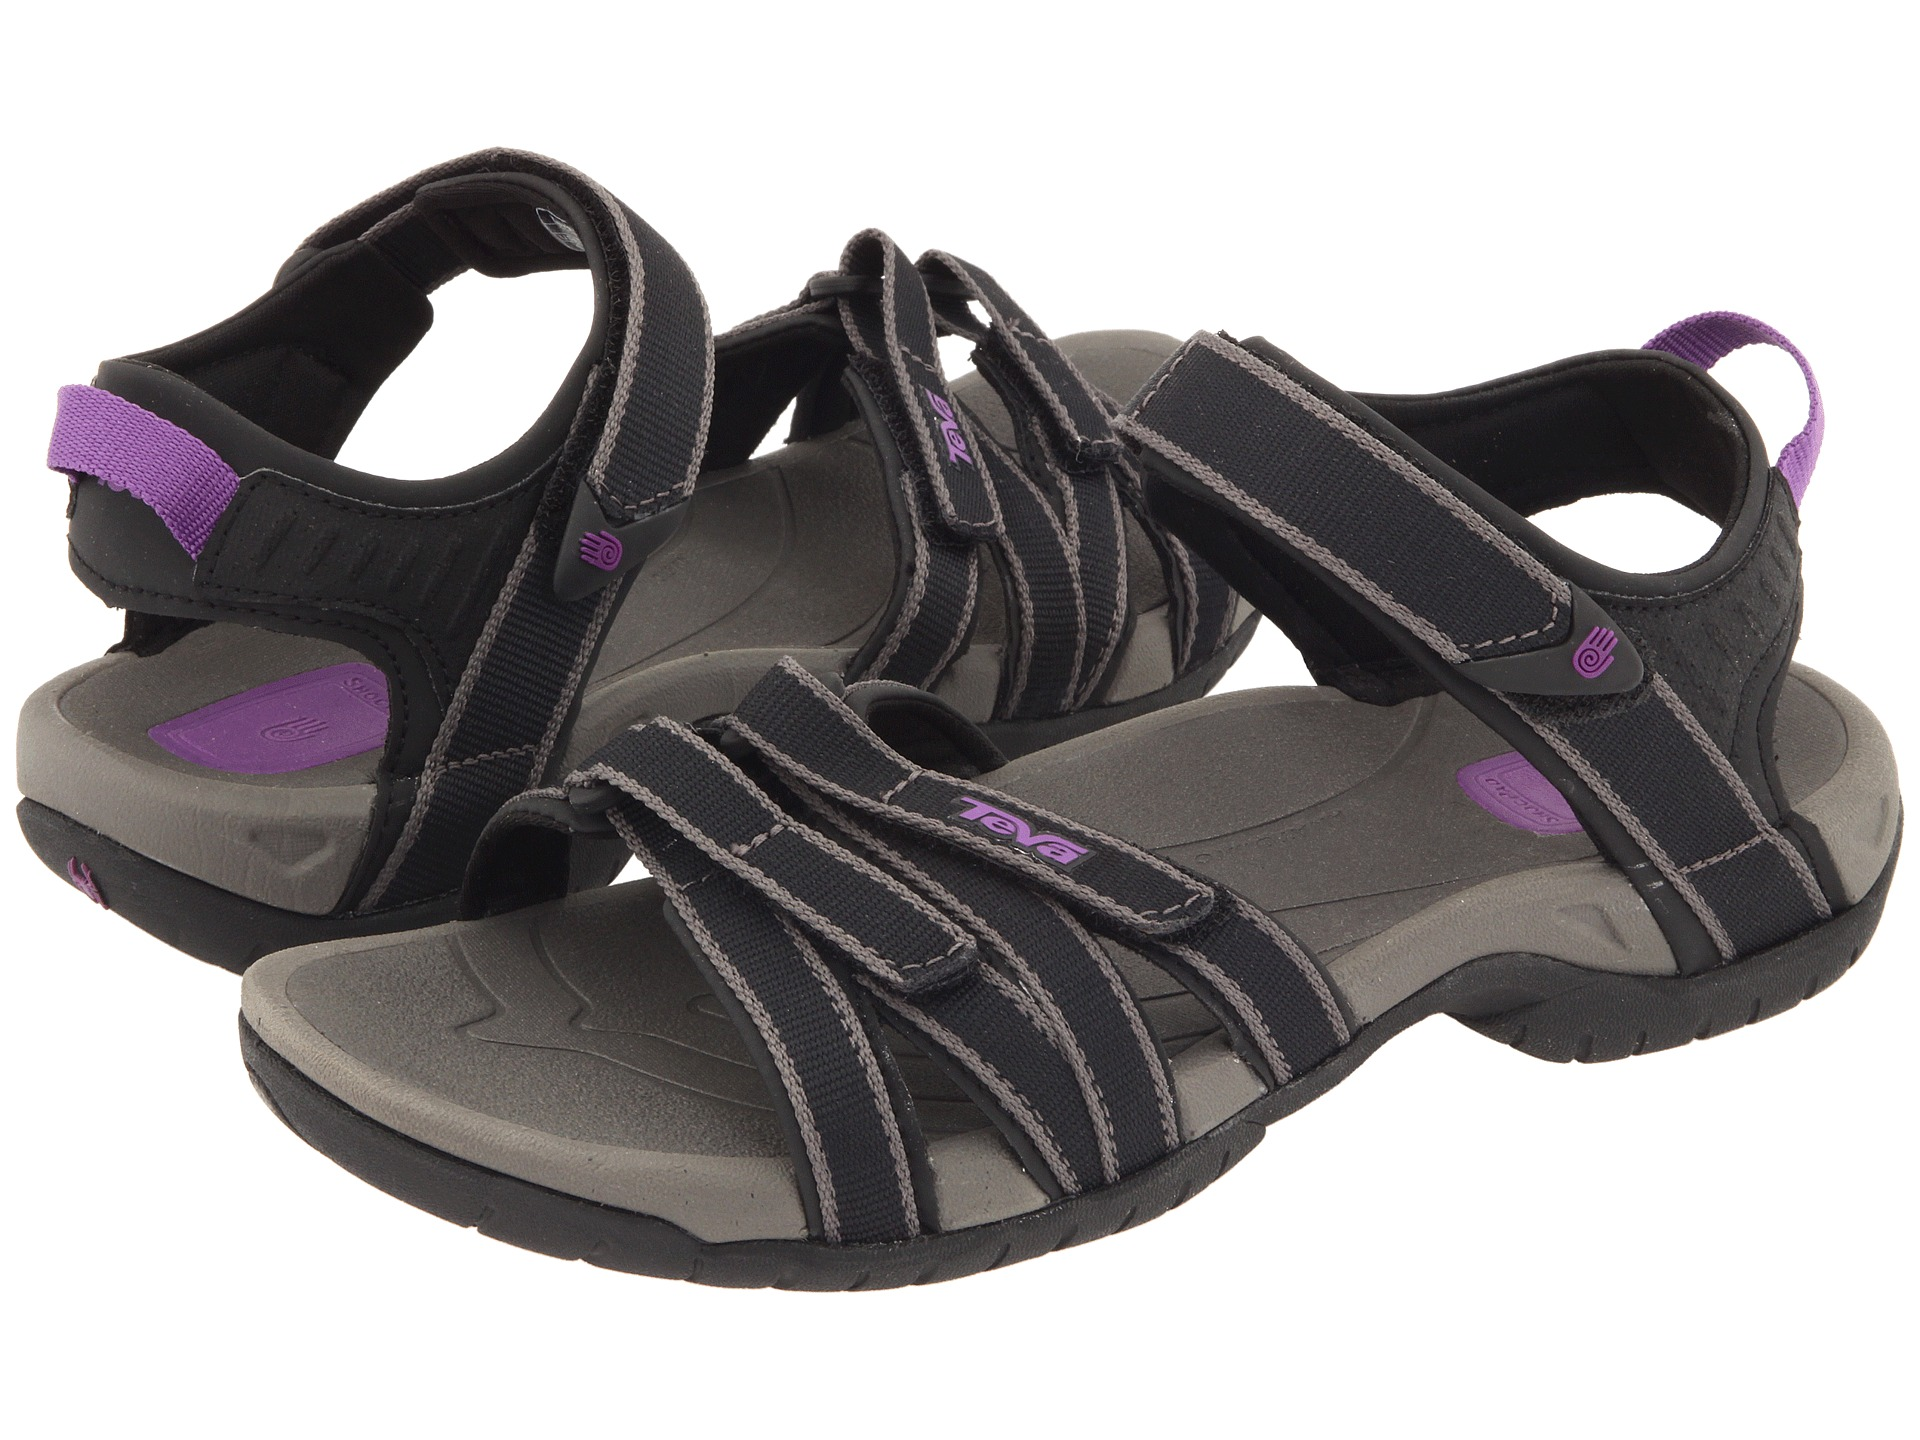 Womens sandals with arch support - Womens Sandals With Arch Support 9